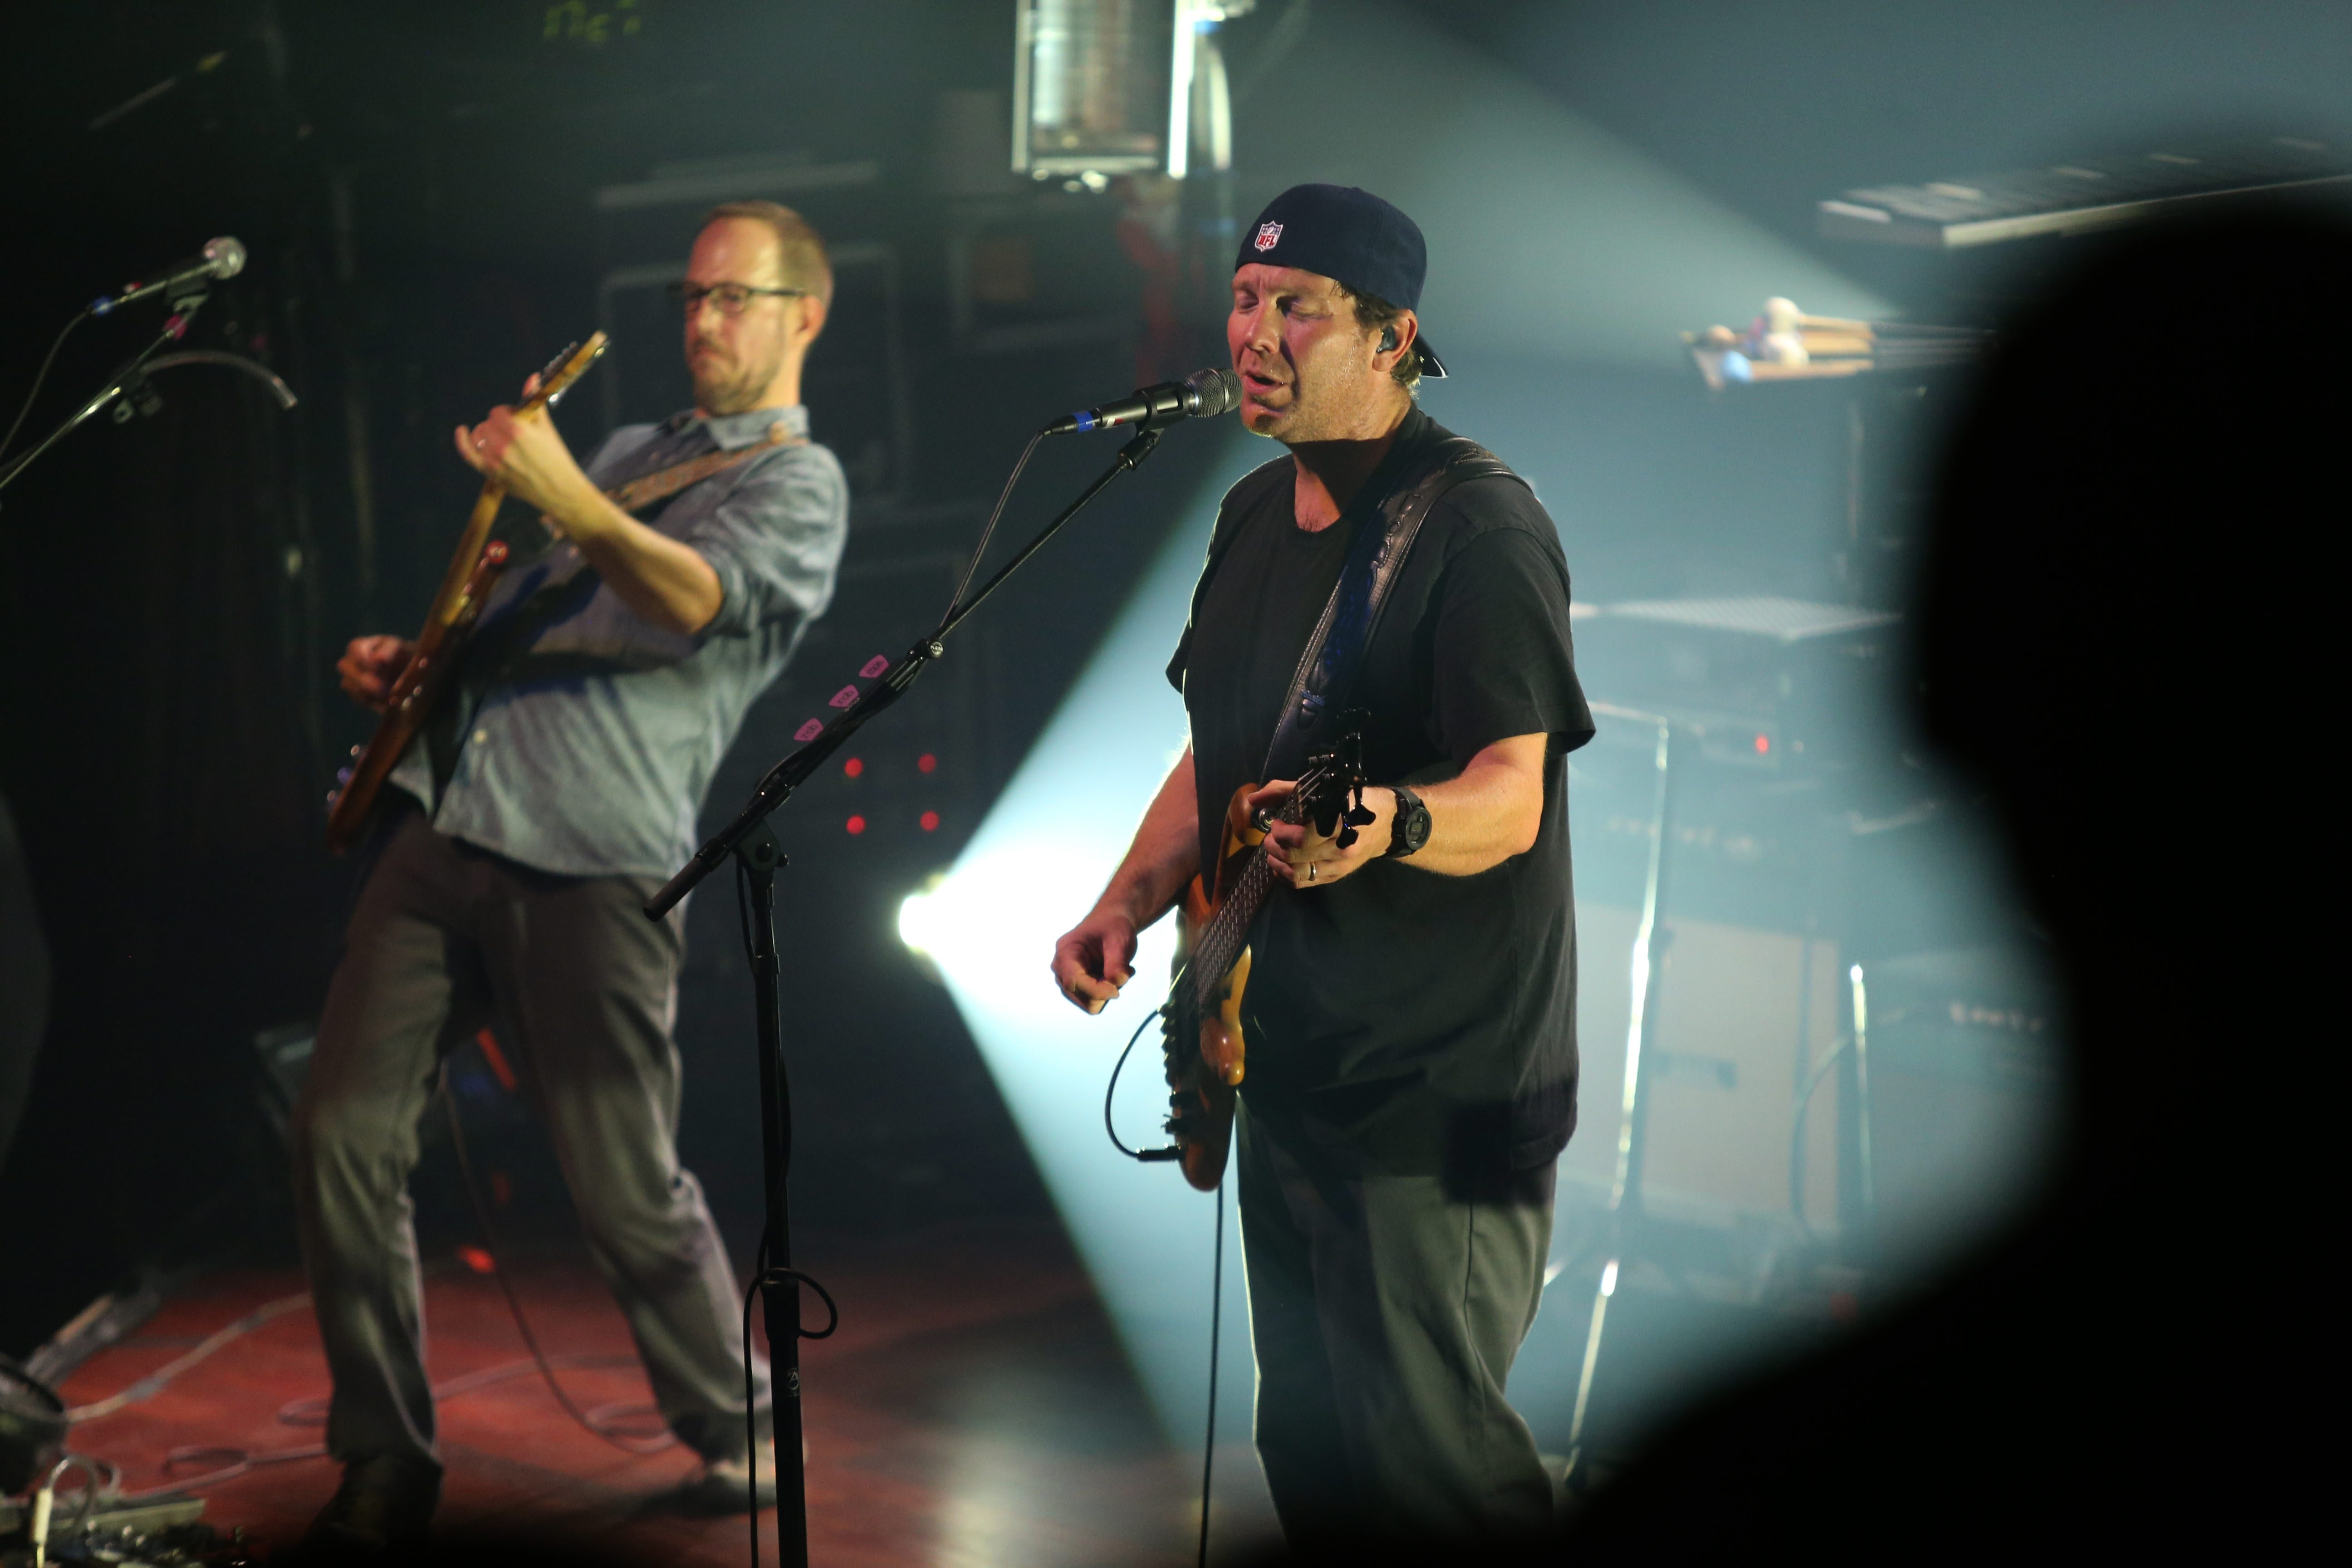 Guitarist Chuck Garvey, left, and bassist/vocalist Rob Derhak perform with moe. Friday evening at the Town Ballroom.